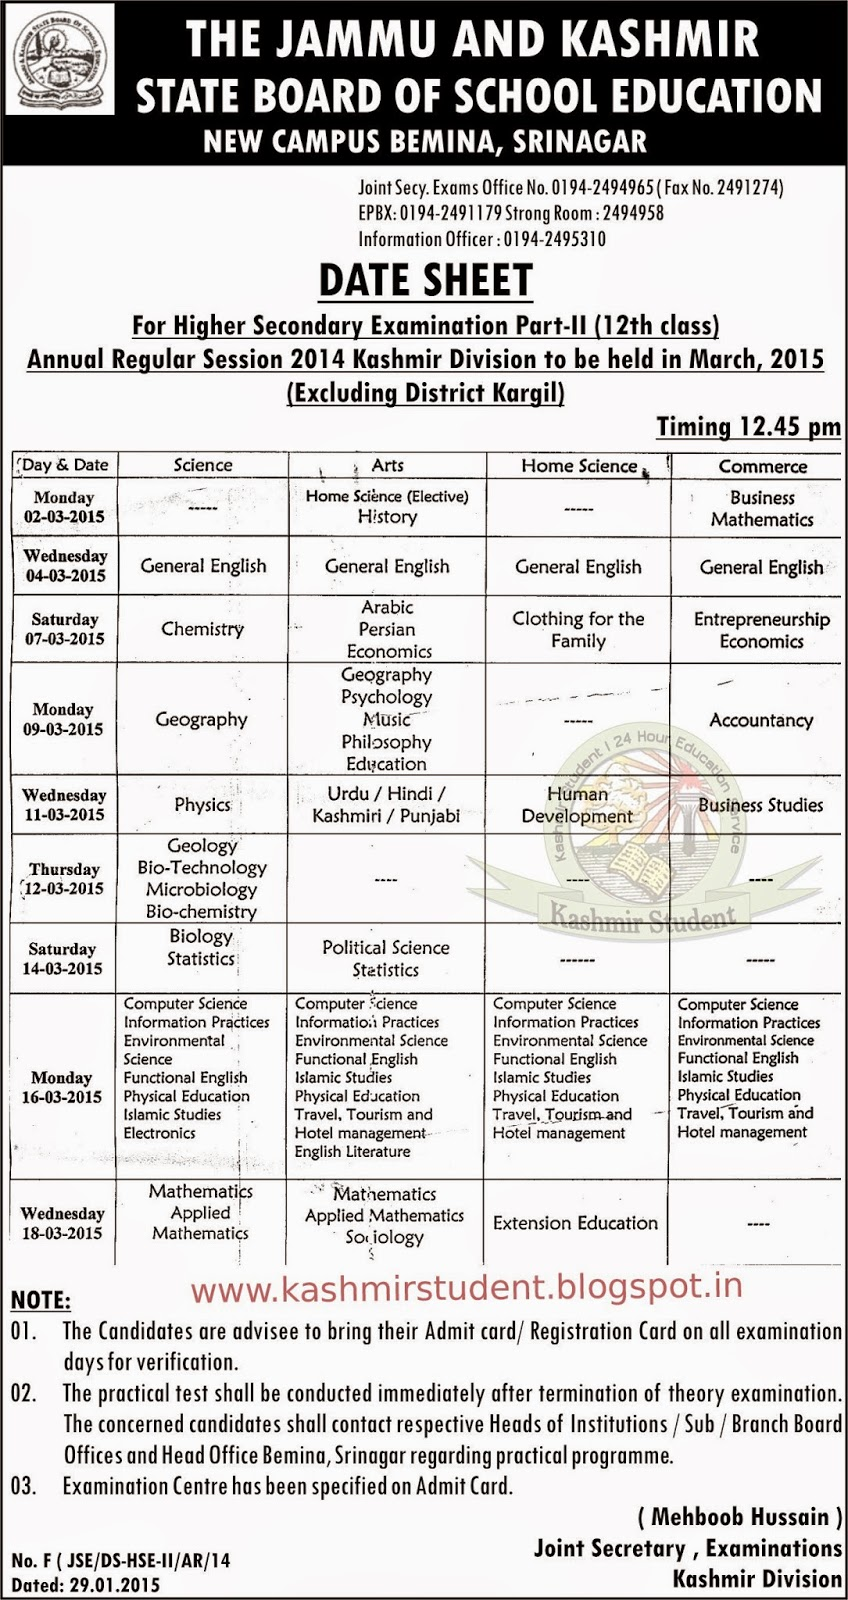 Date Sheet for Part II (12th Class) Annual Regular Examination Session 2014 - Kashmir Division